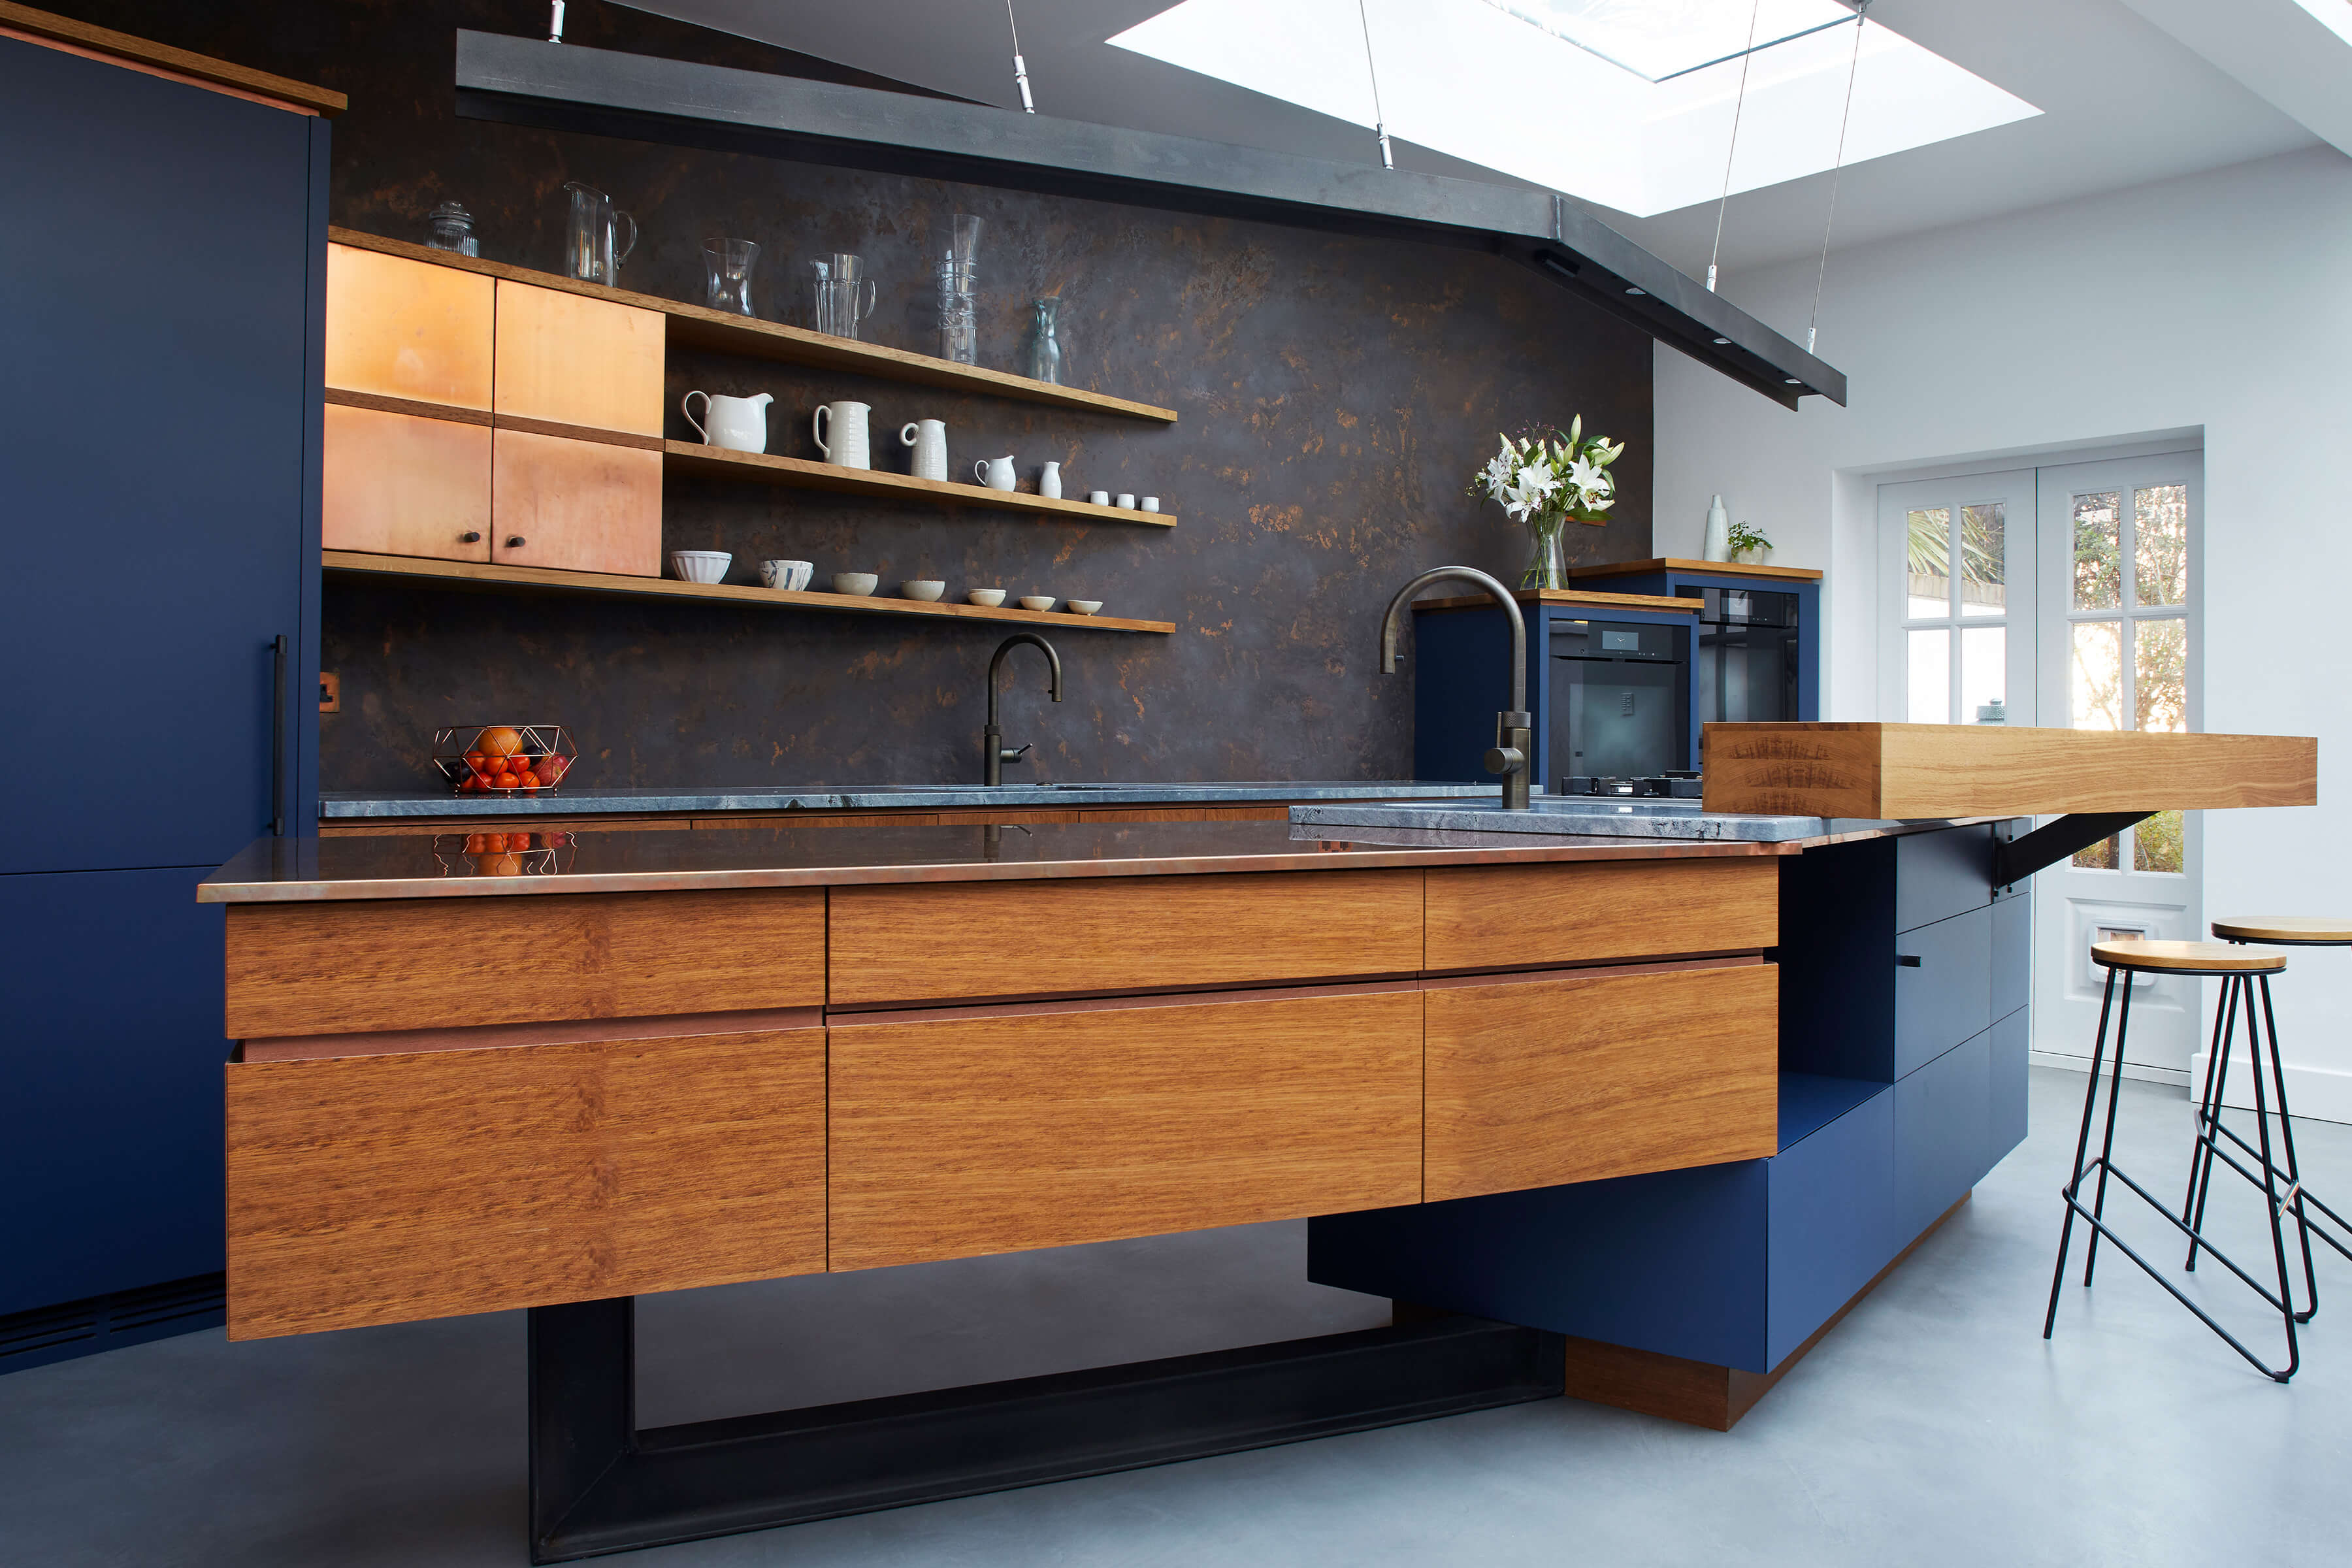 Blue and copper metal kitchen with clever storage and ergonomic design